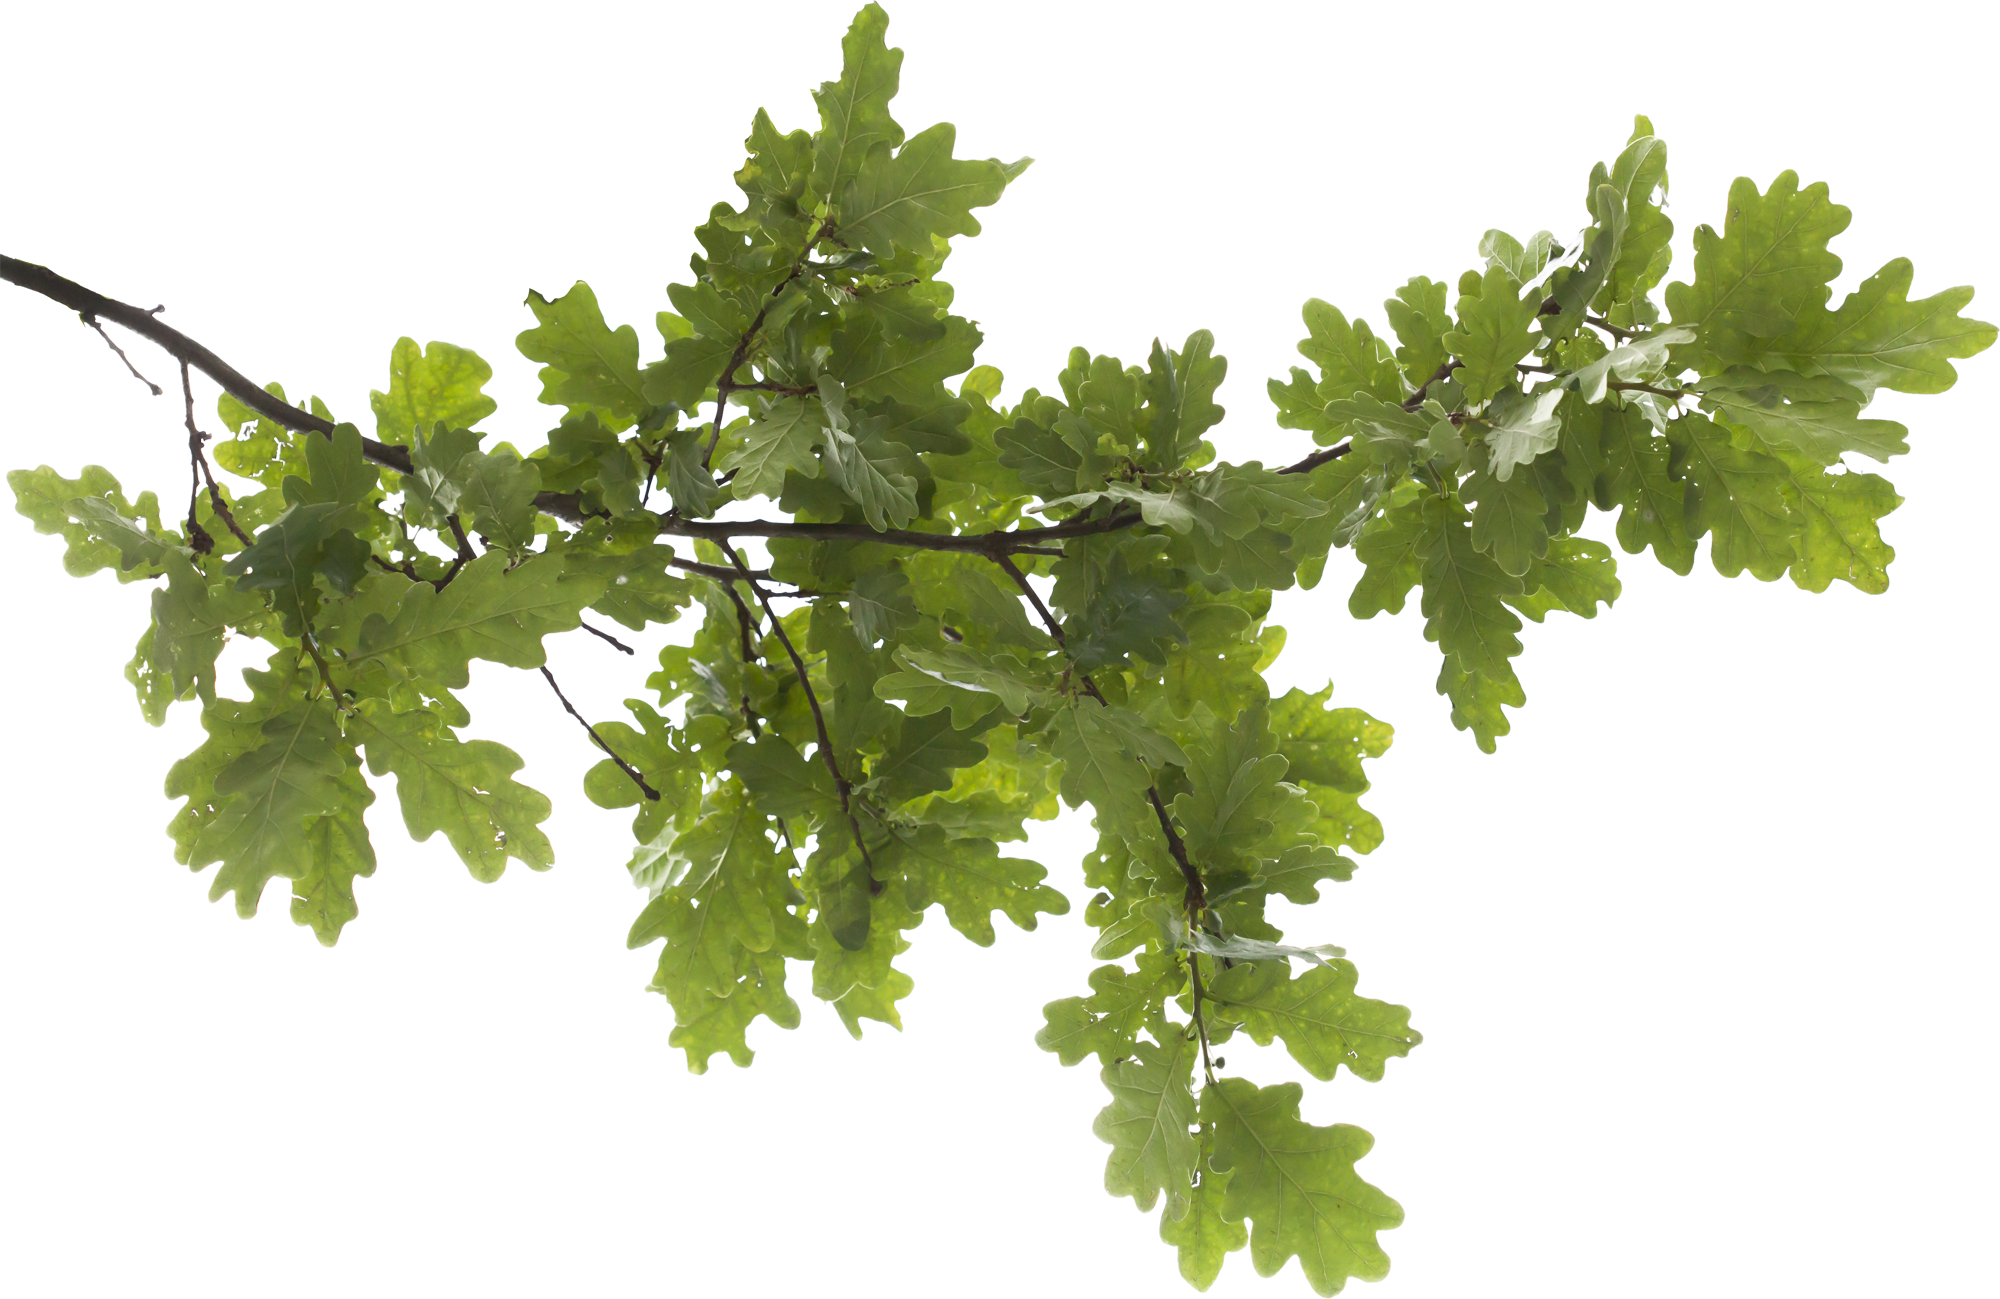 Tree Branch PNG Transparent Image - Tree Limb PNG